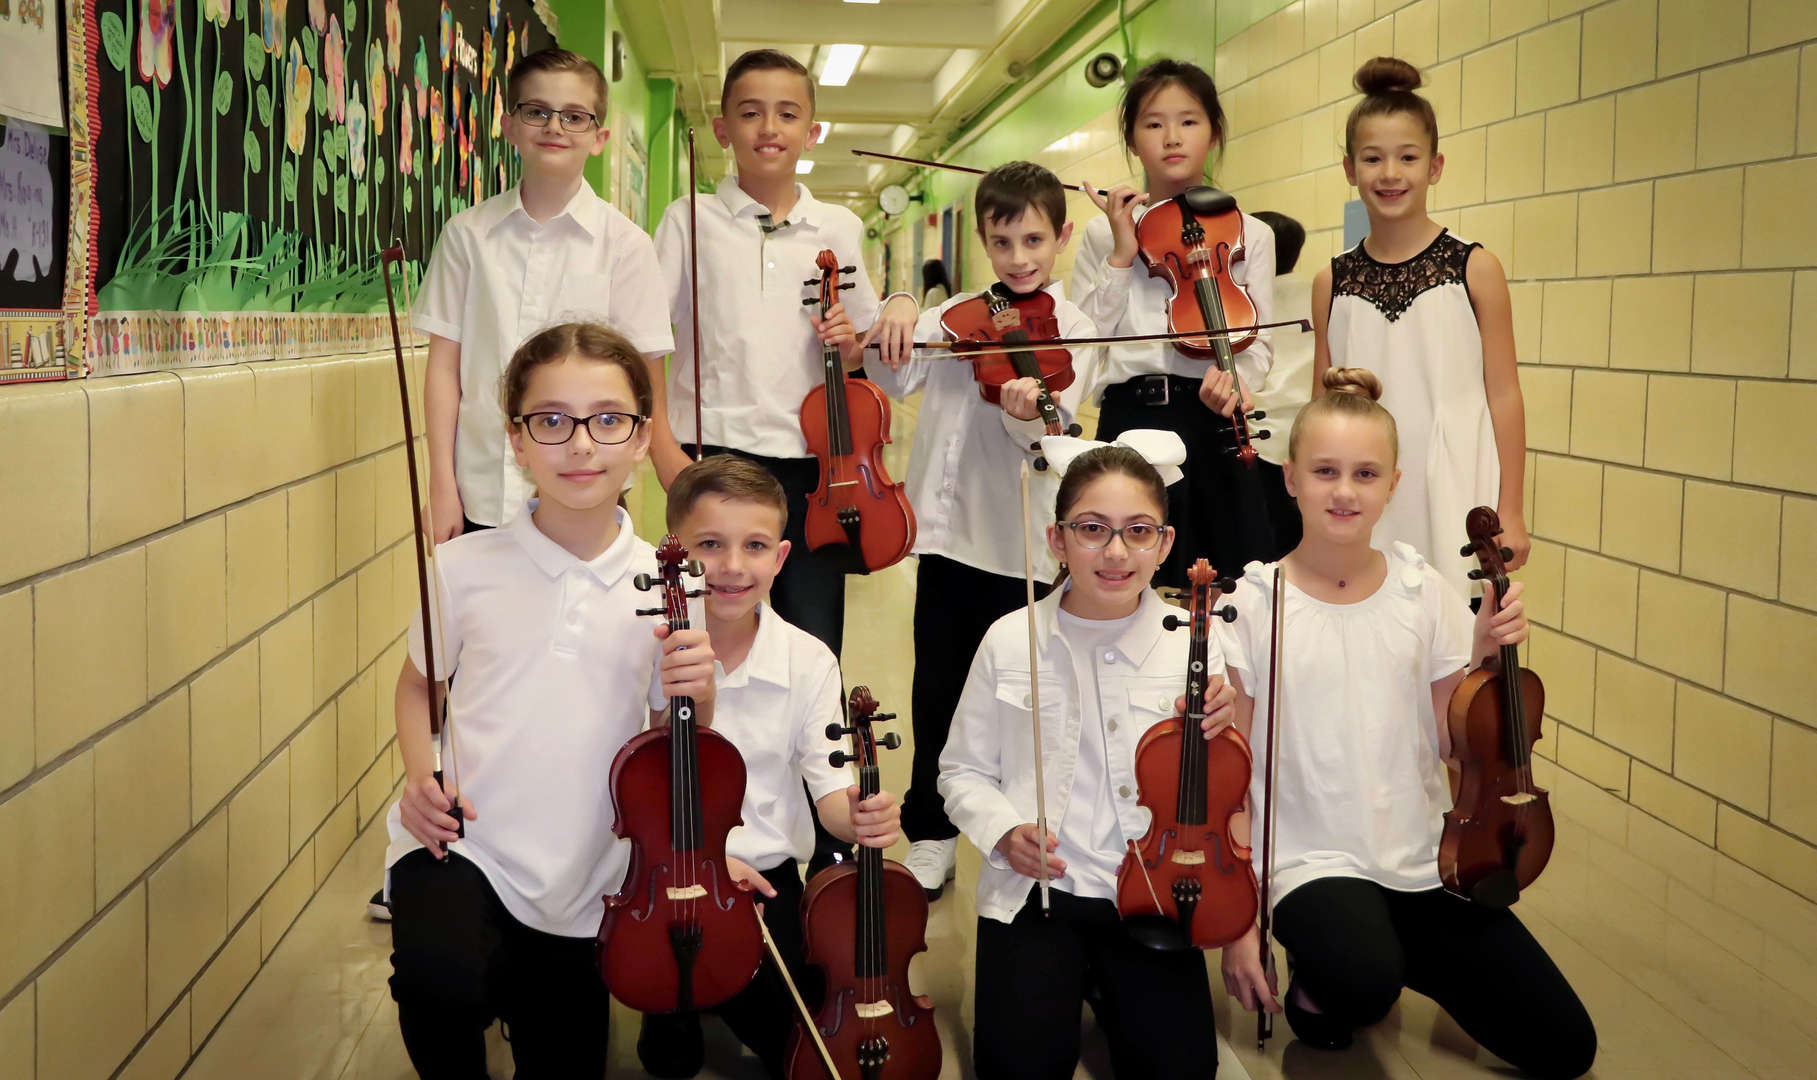 The violinists posing for a group picture